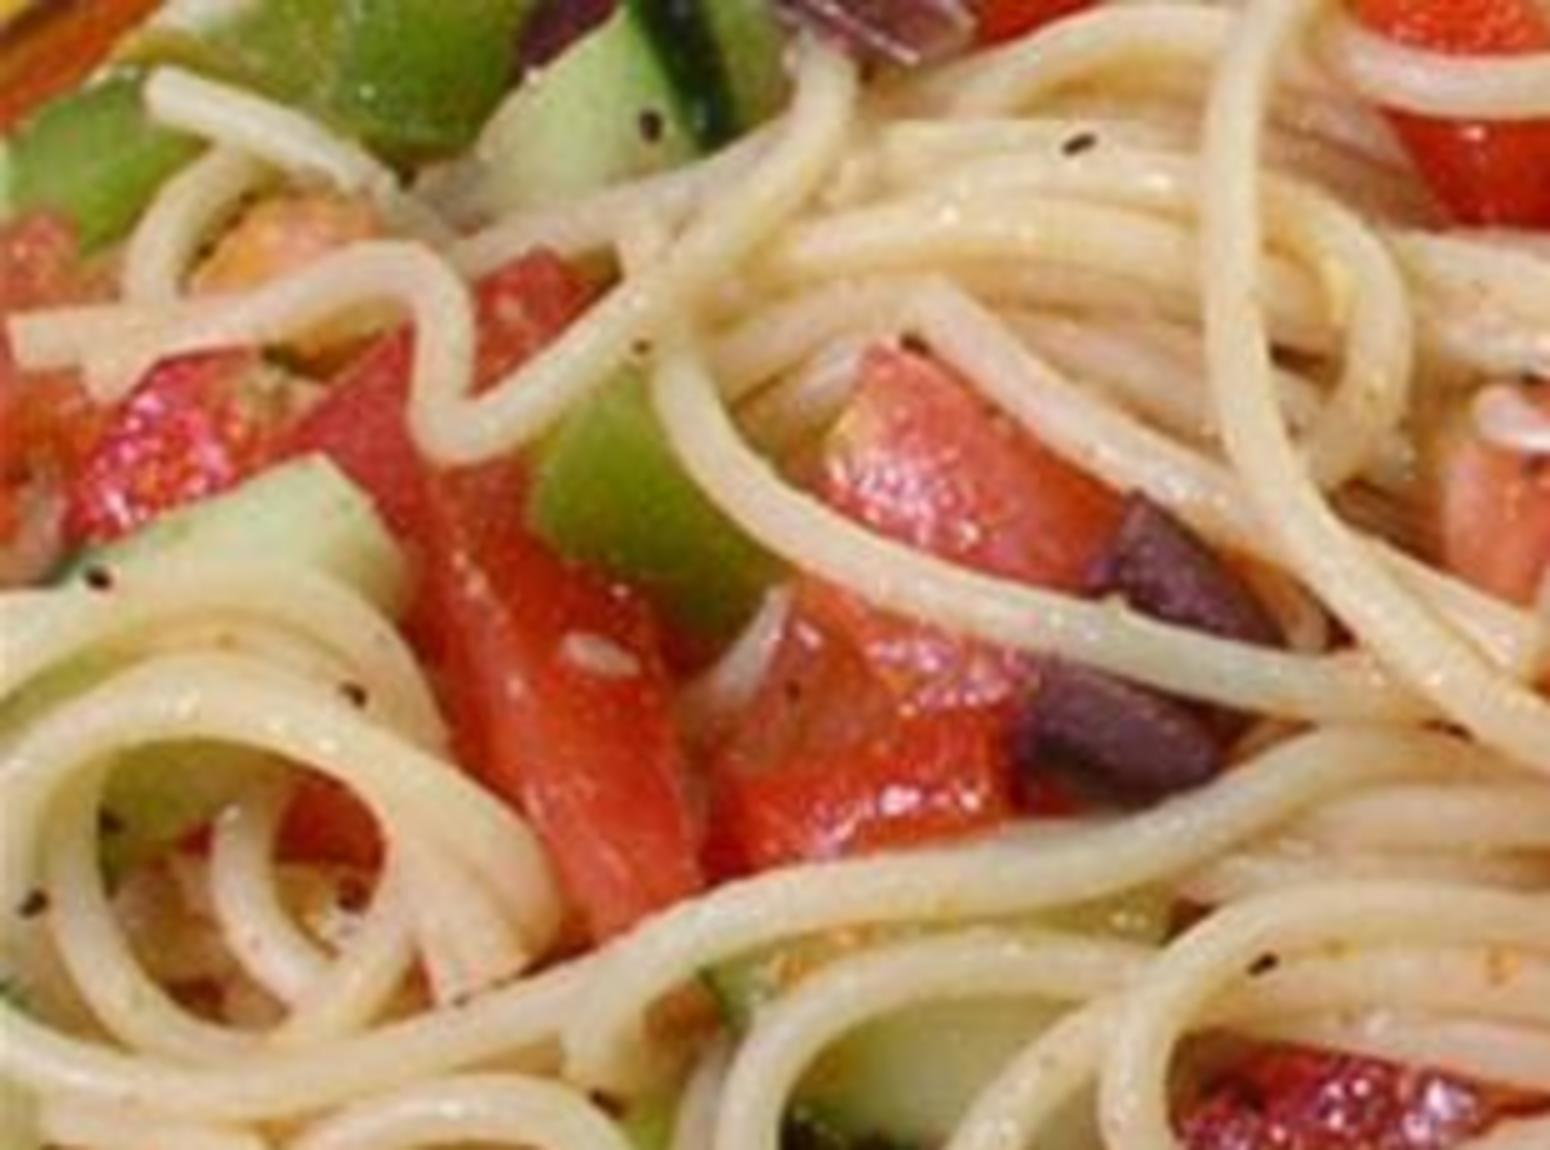 Pasta used in soups and salads